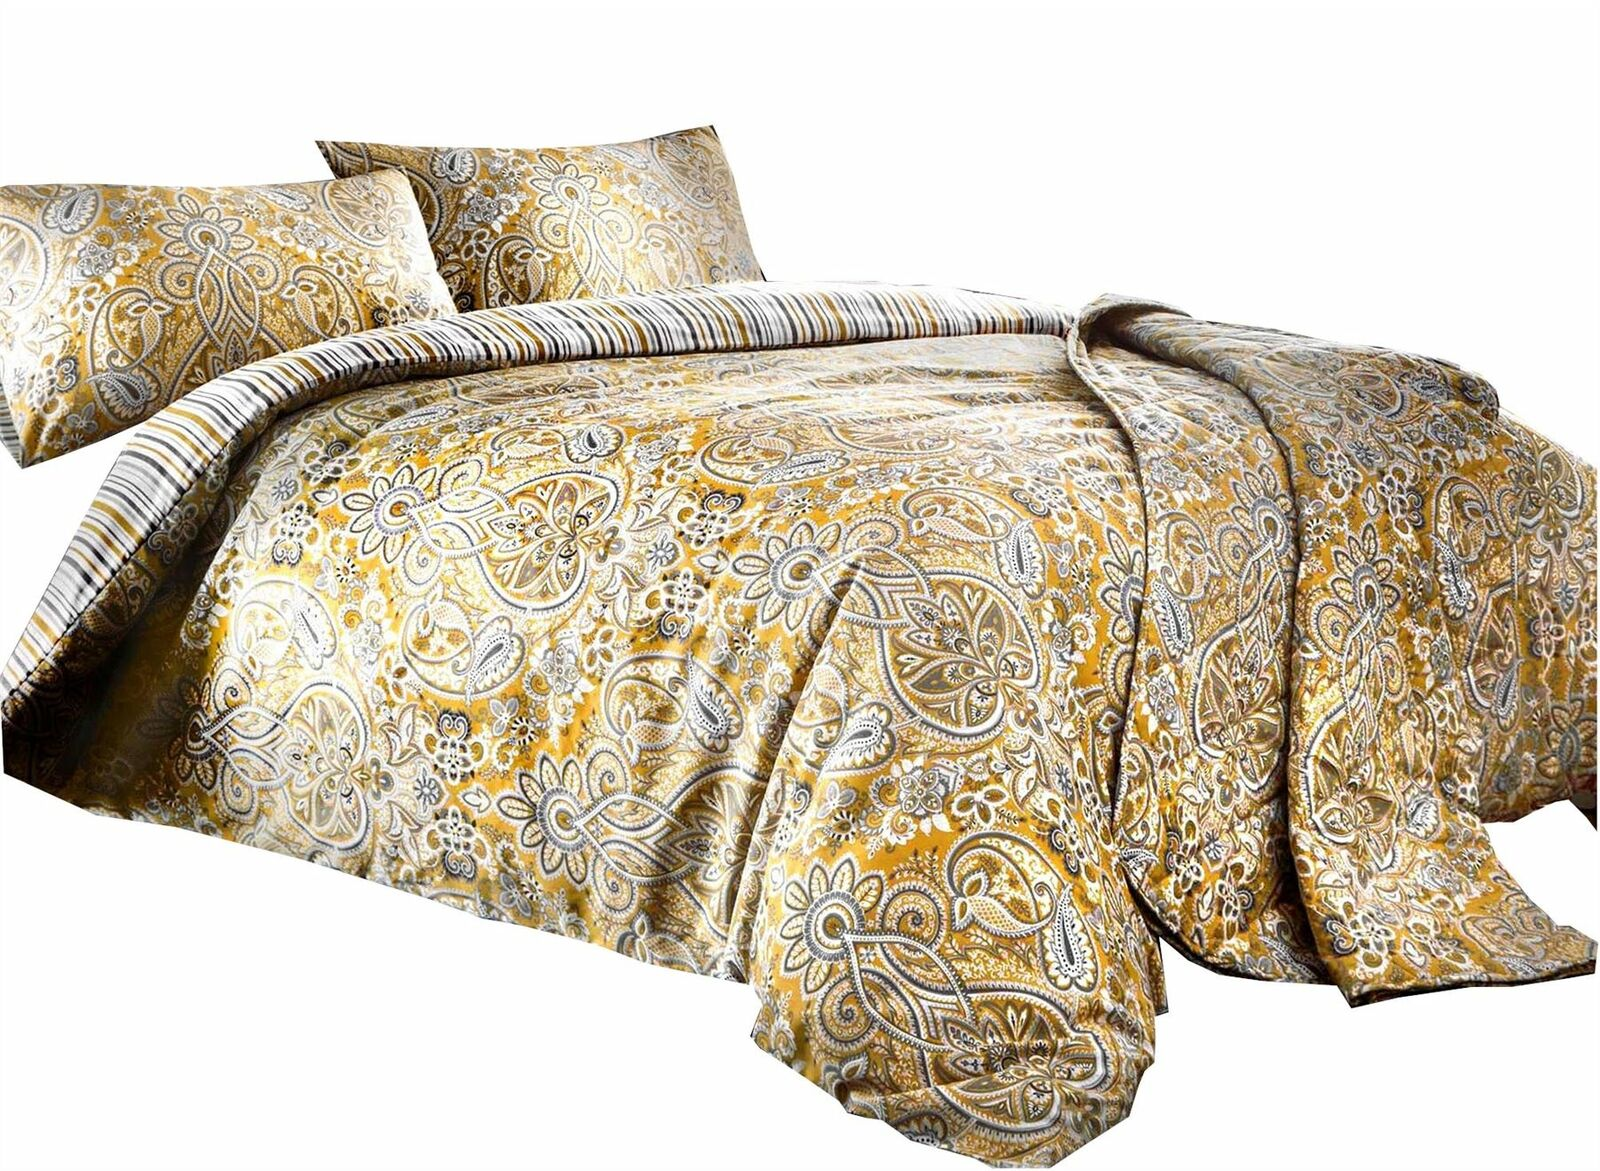 PAISLEY STRIPED OCHRE gold COTTON BLEND KING SIZE DUVET COVER &RING TOP CURTAINS